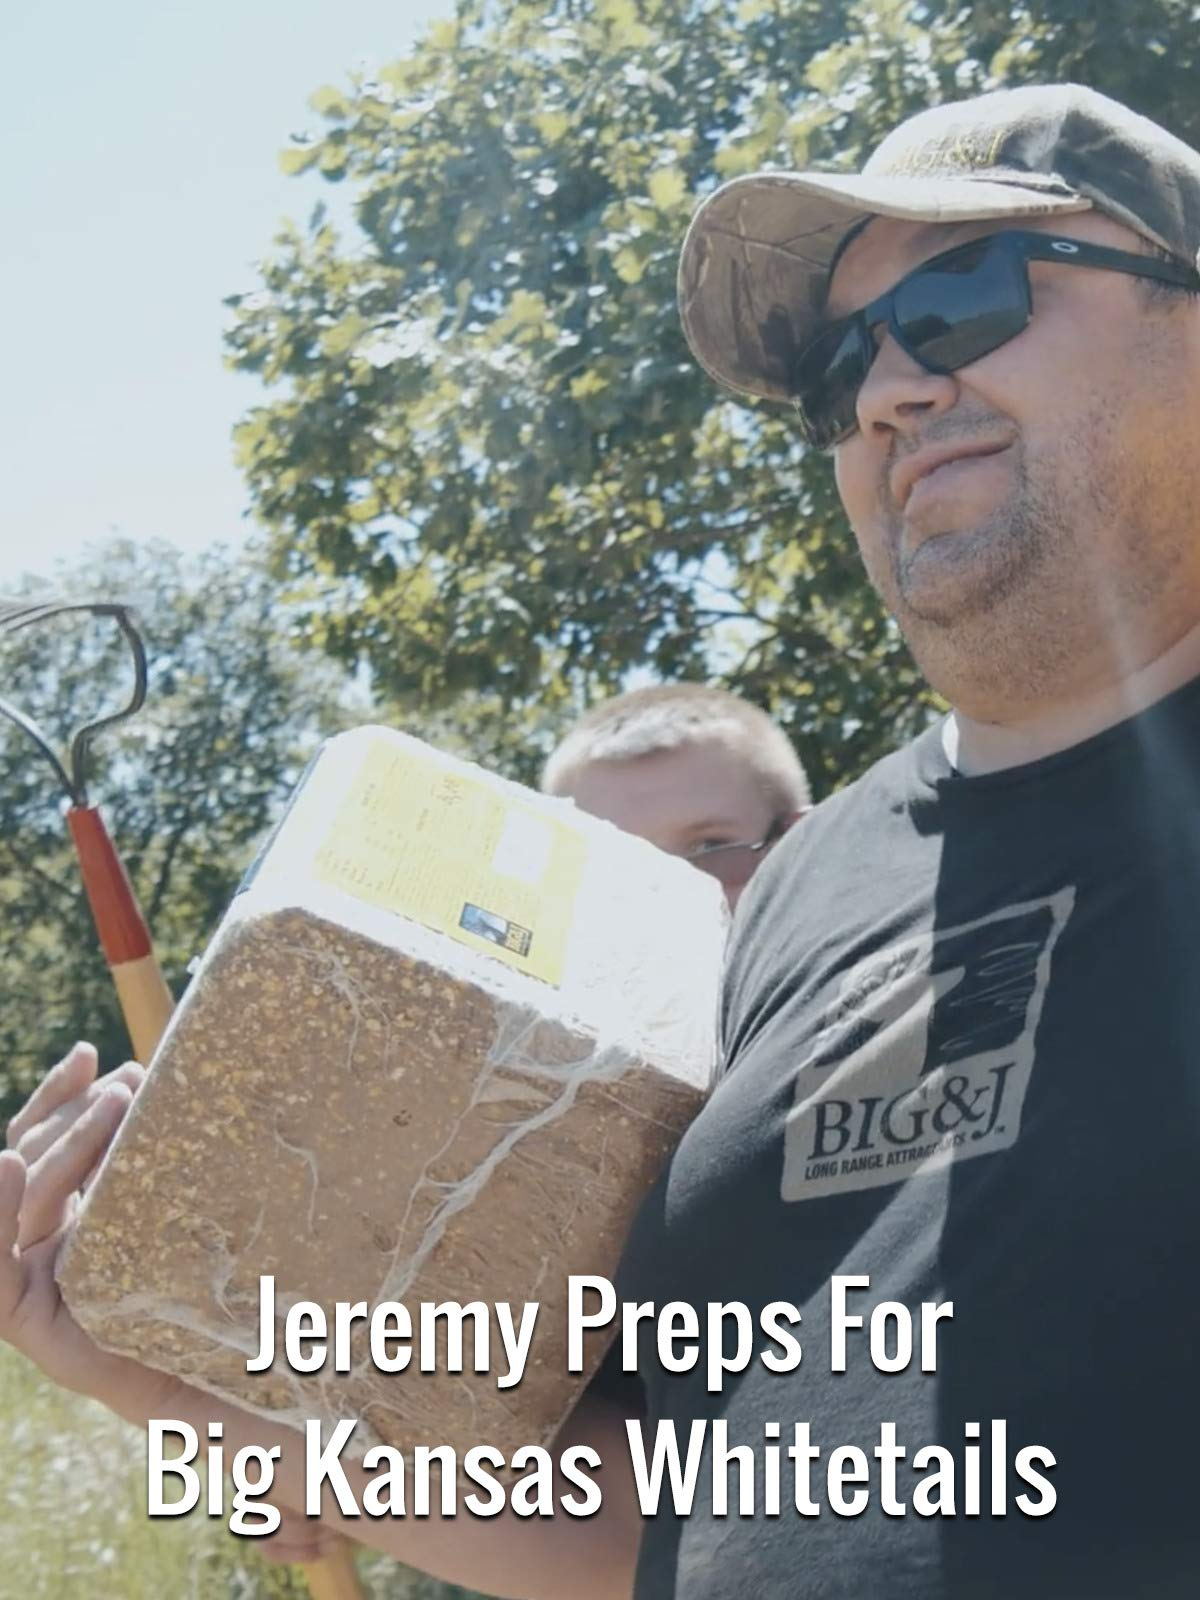 Jeremy Preps For Big Kansas Whitetails on Amazon Prime Video UK